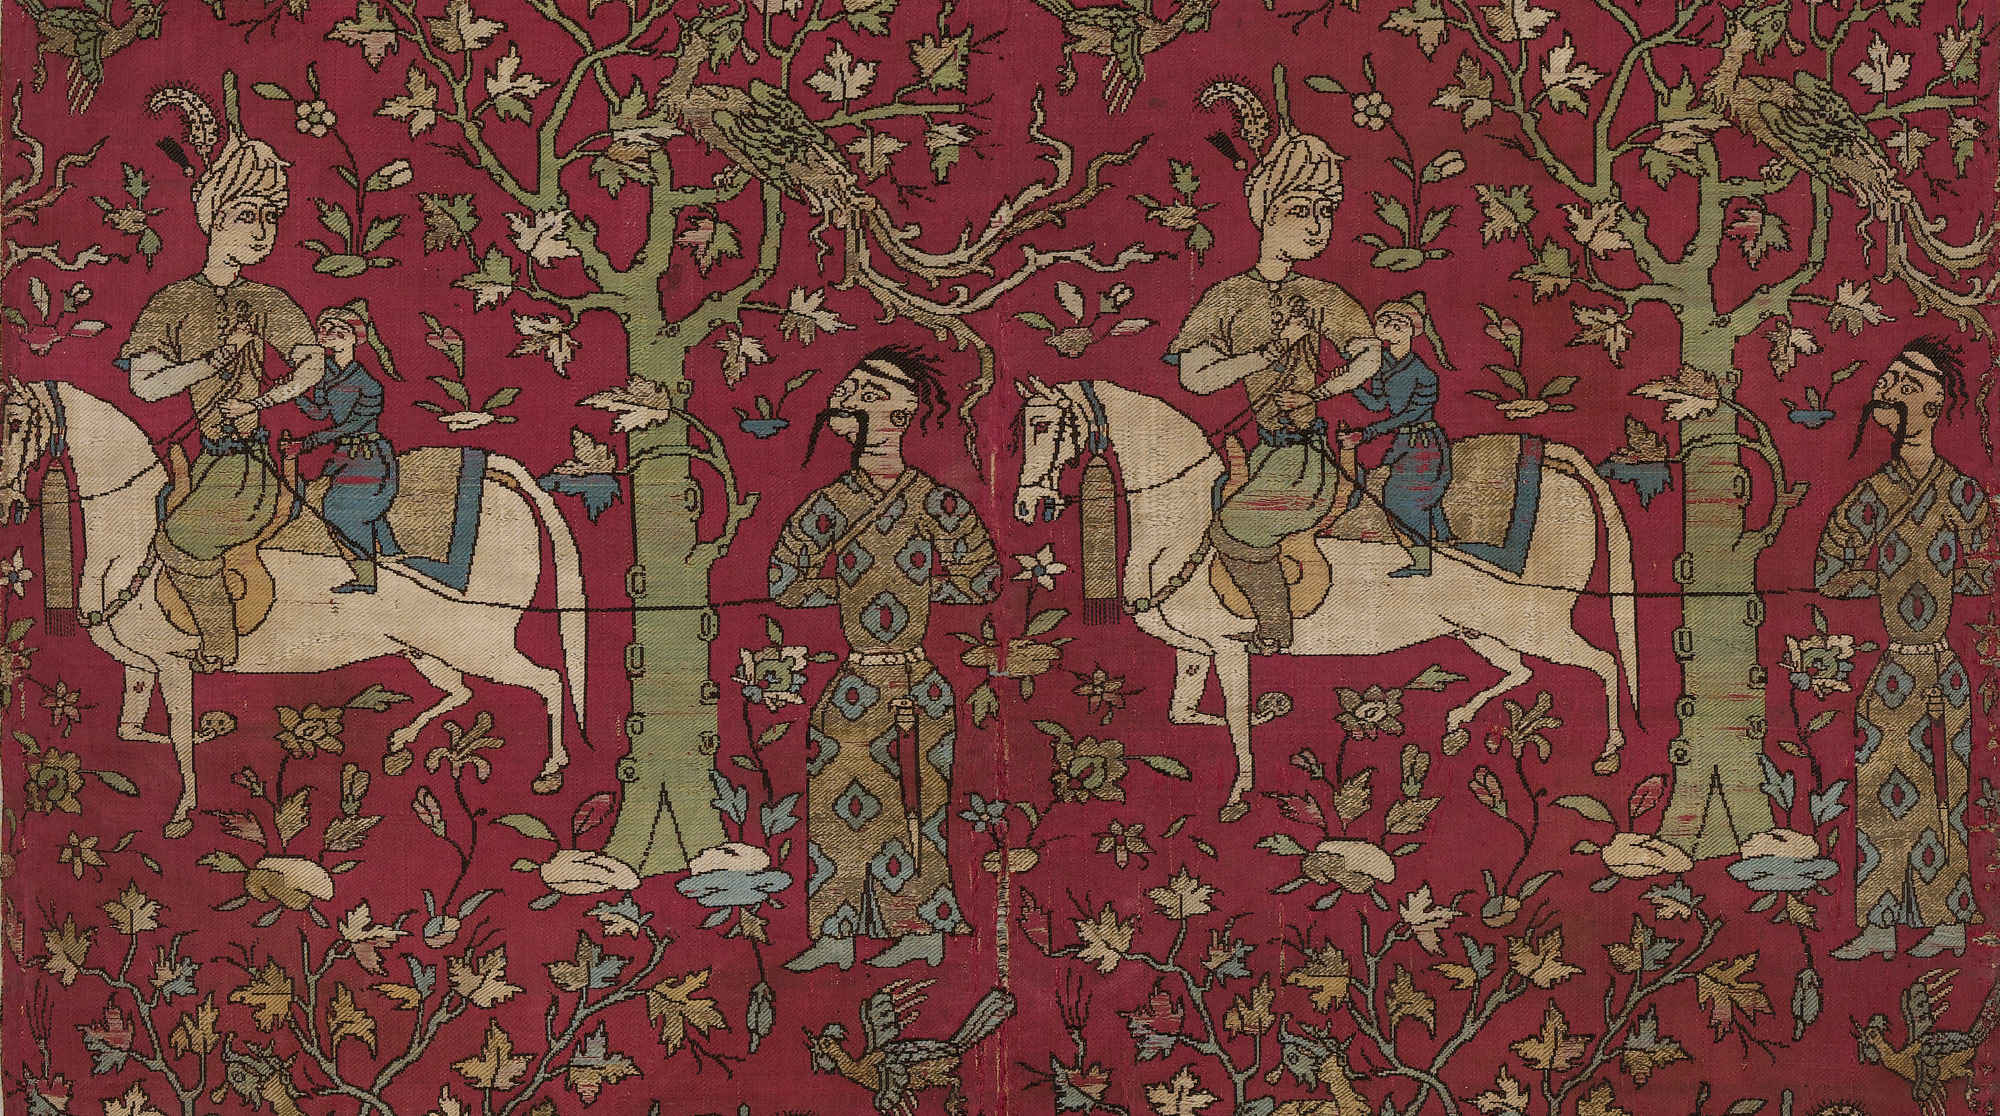 Safavid Courtiers Leading Georgian Captives